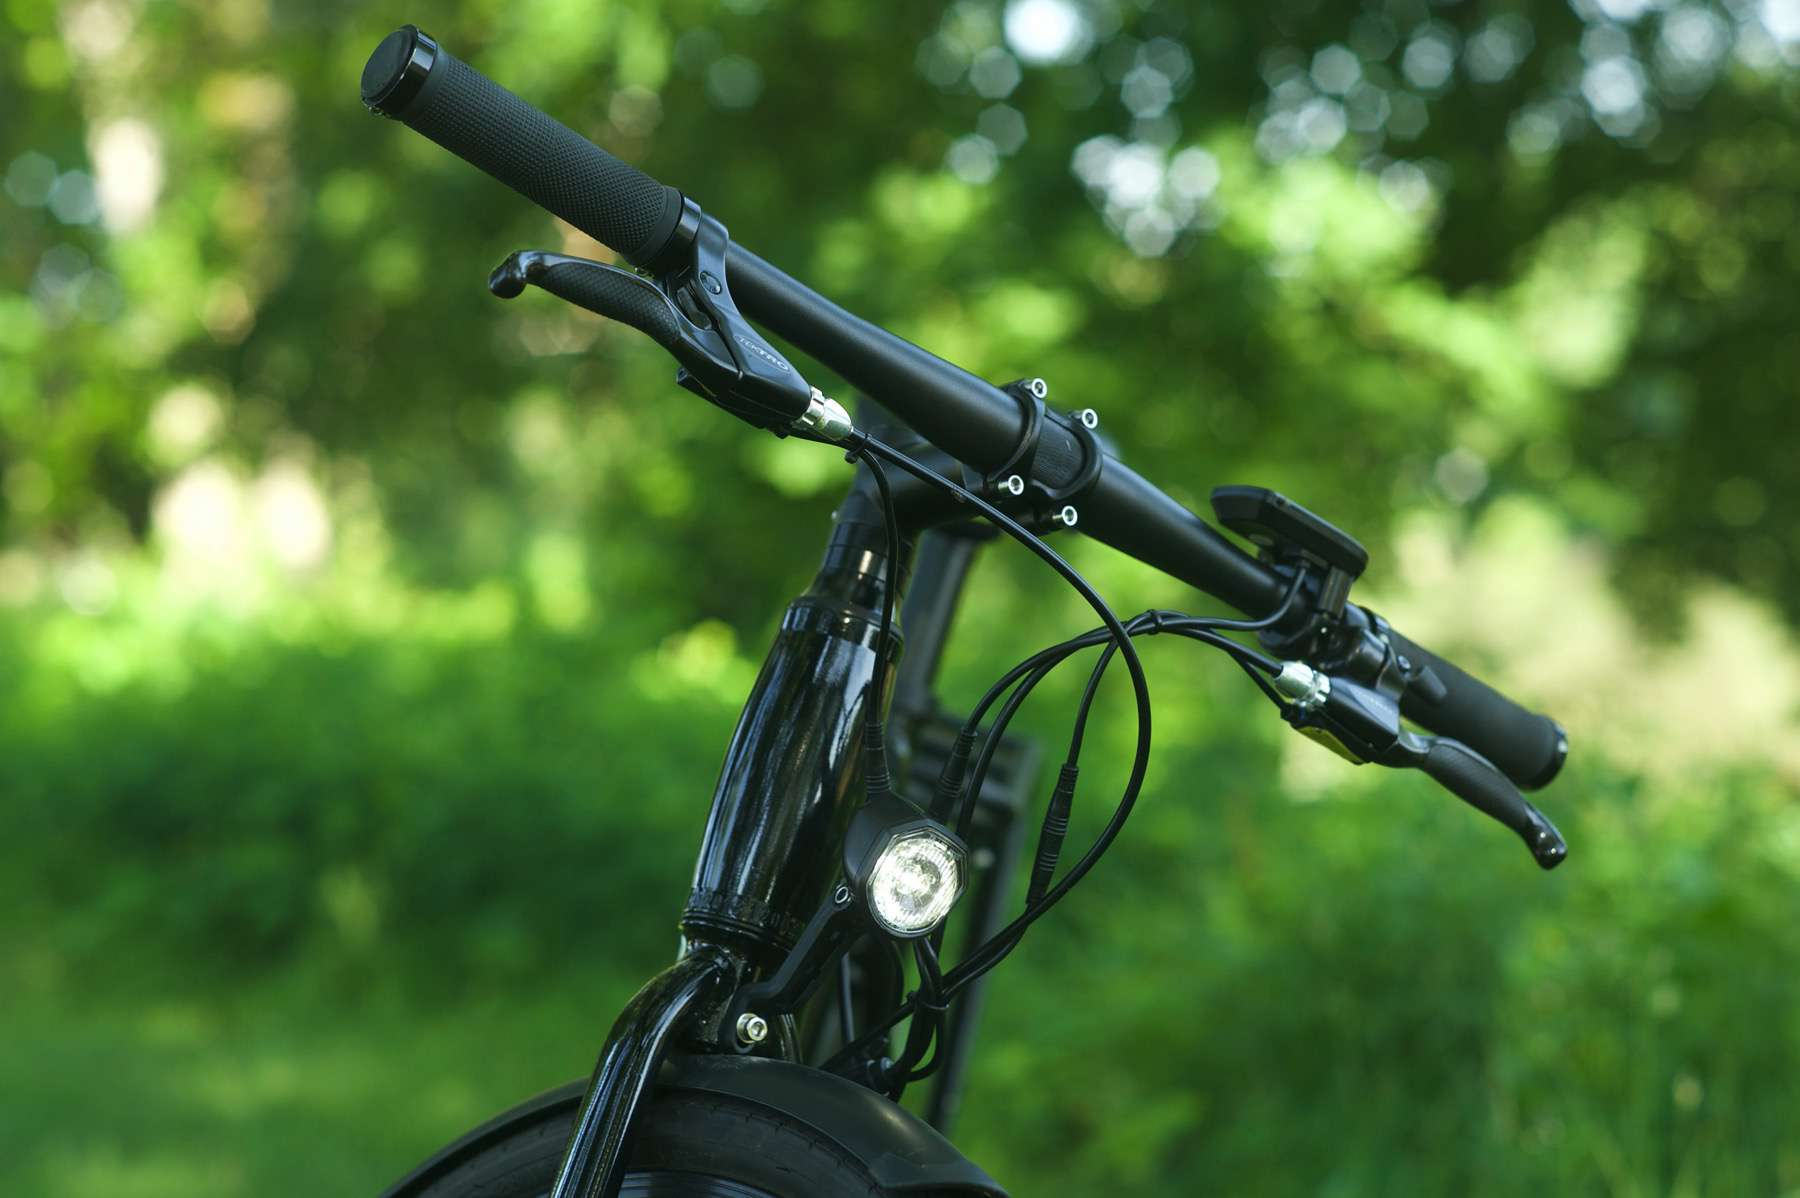 Handlebars with lights built in